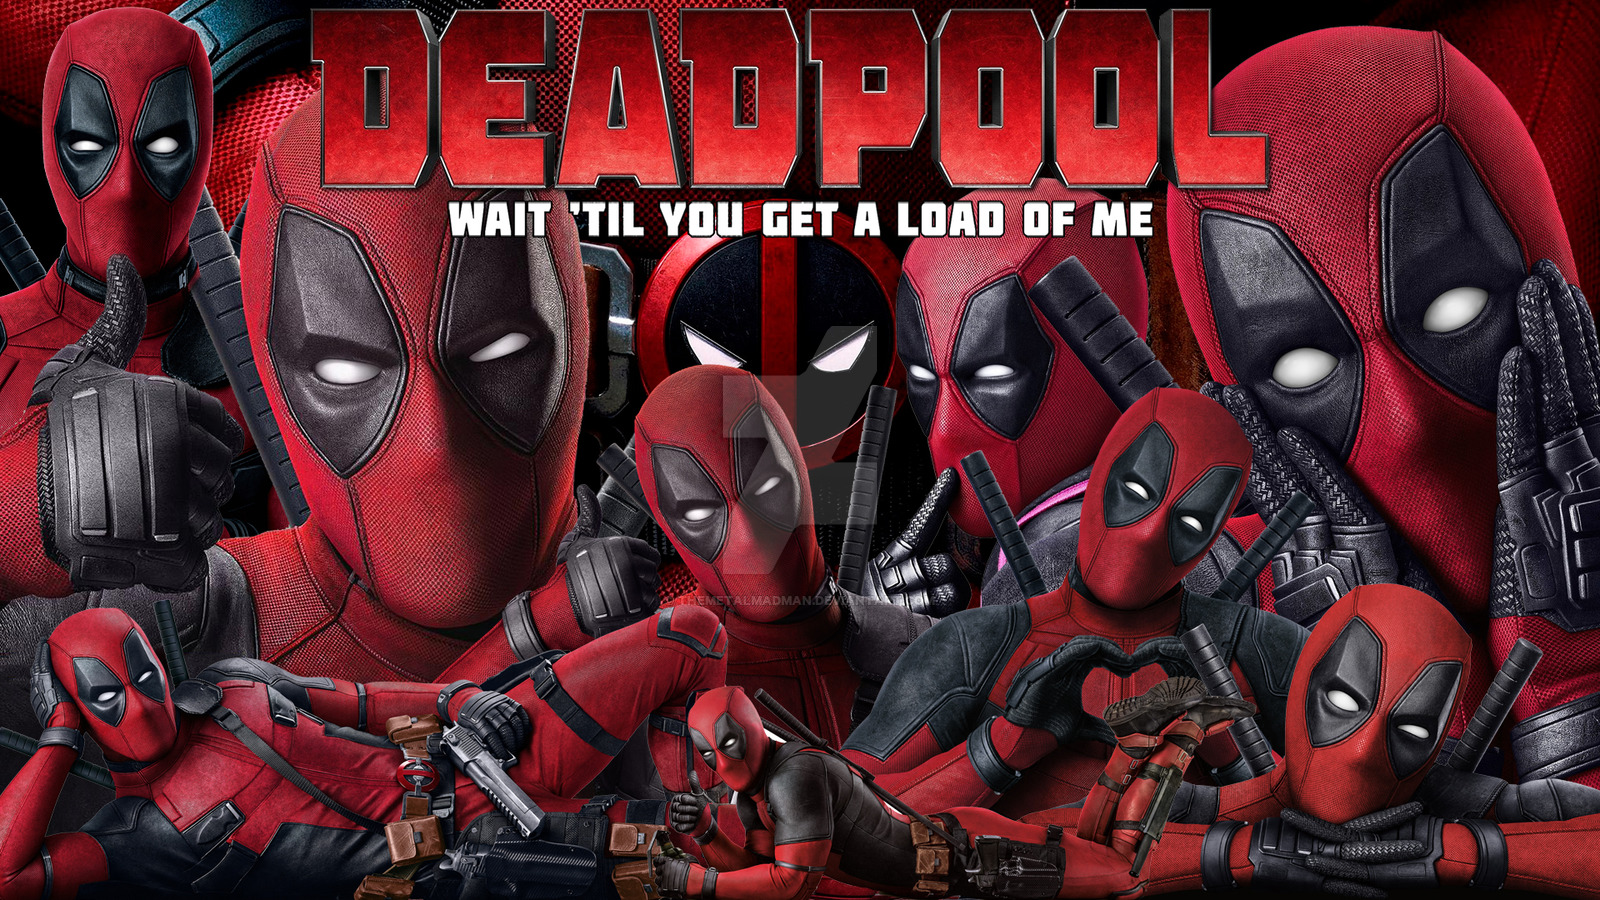 Deadpool 2016 Images Deadpool Movie Wallpaper Hd Wallpaper And